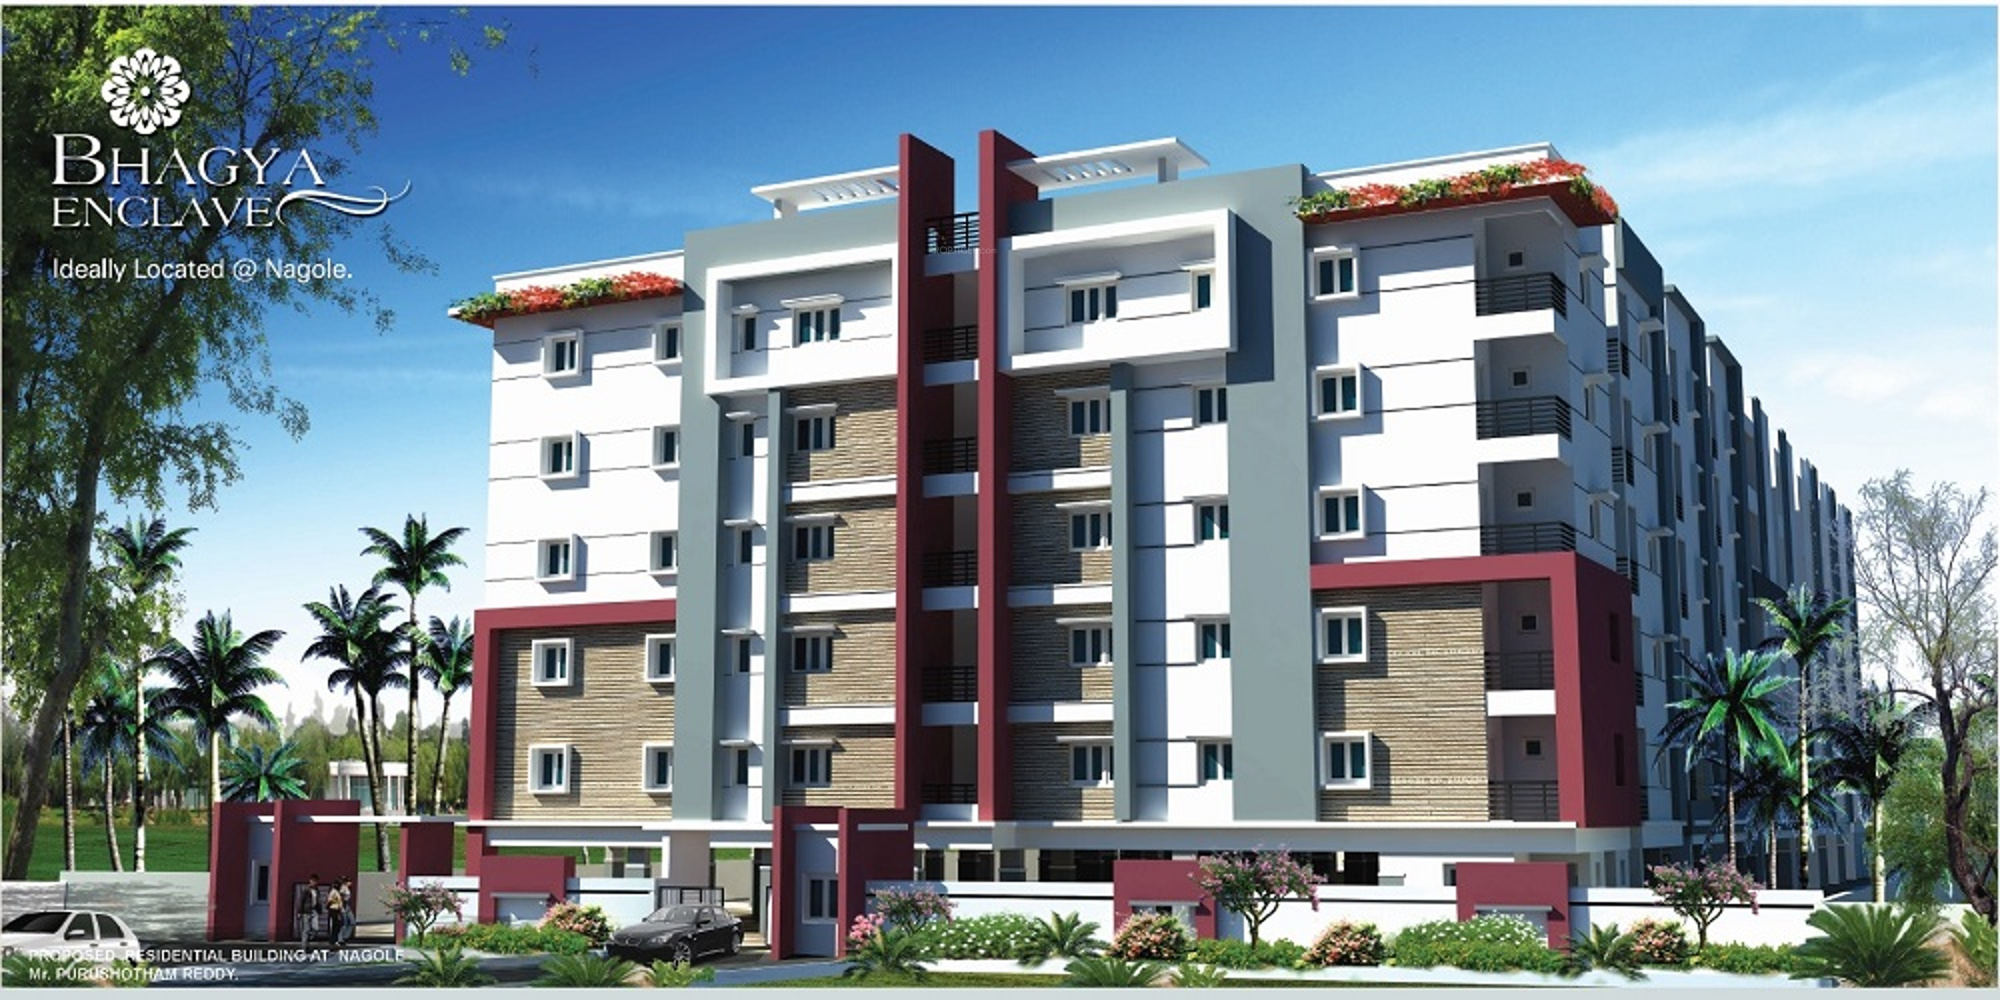 Comfort Living : 1190 sq ft 2 BHK 3T Apartment for Sale in Bhagya Sree ...